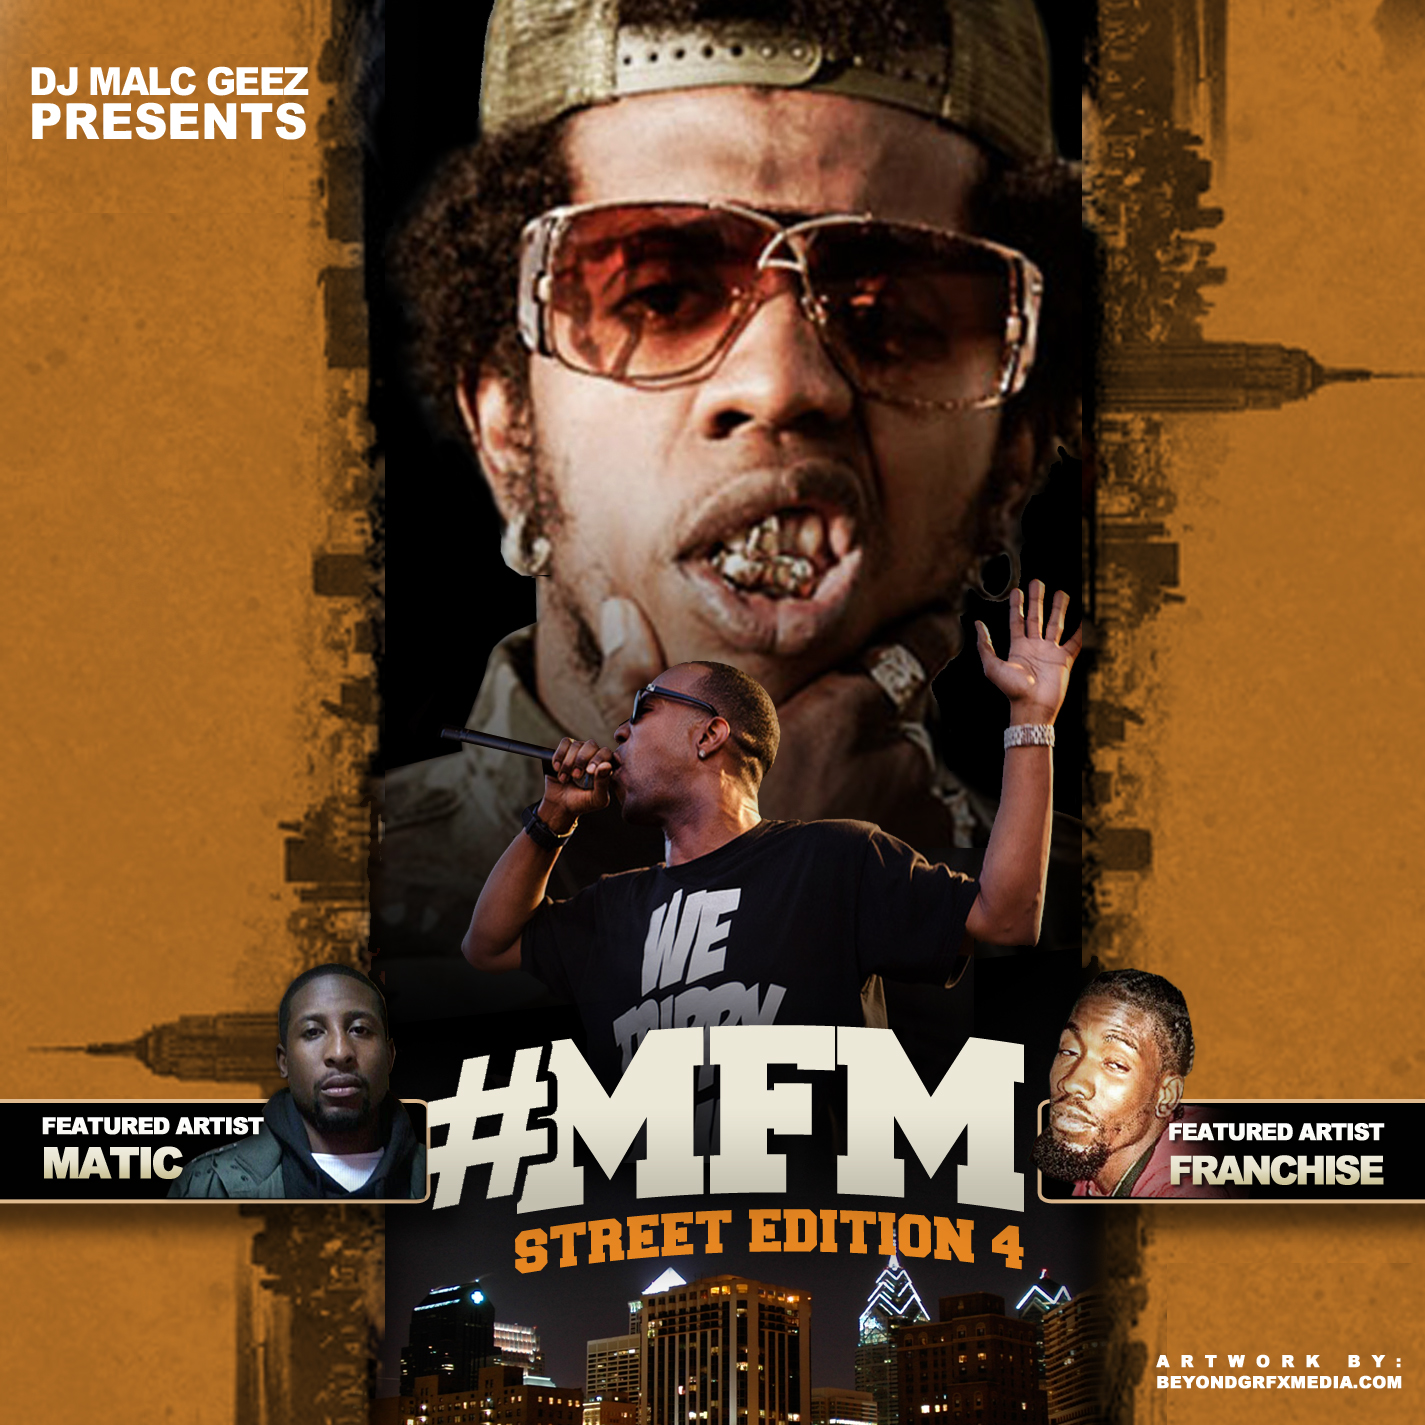 DJ Malc Geez - MFM Street Edition 4 (Mixtape)